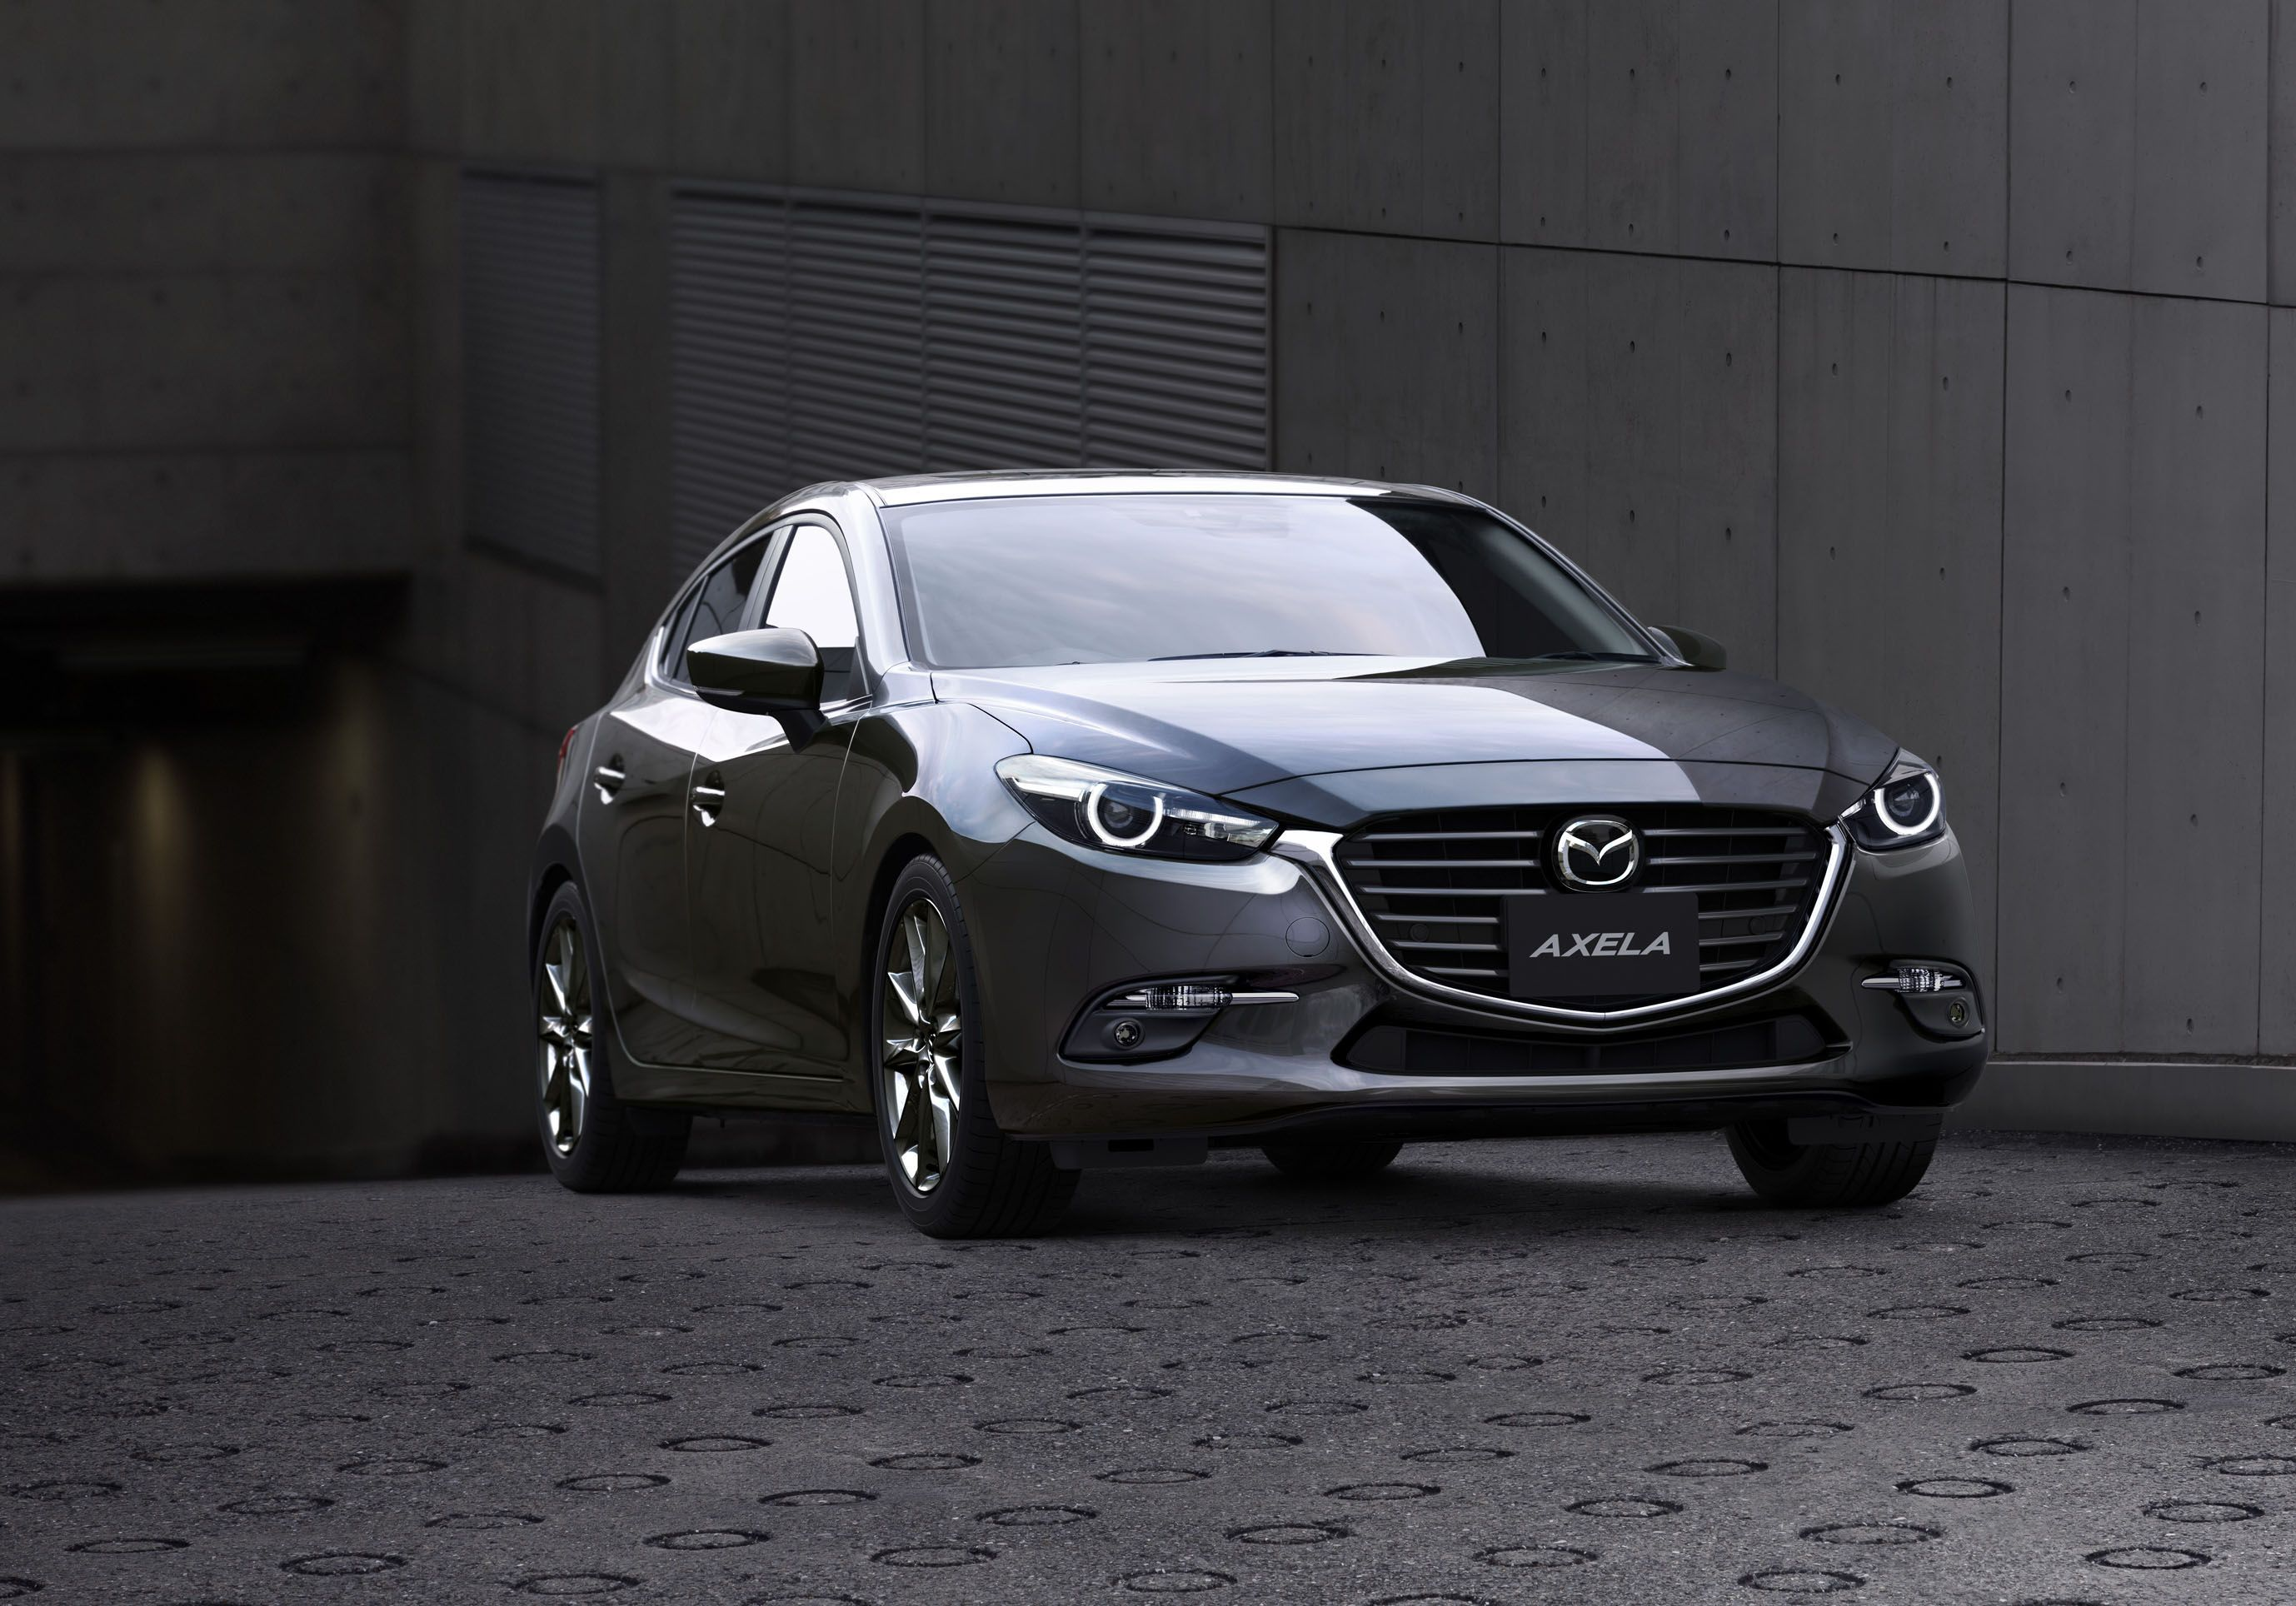 mazda john stuff about of fun the new dealership ma andrew mx rf used launch